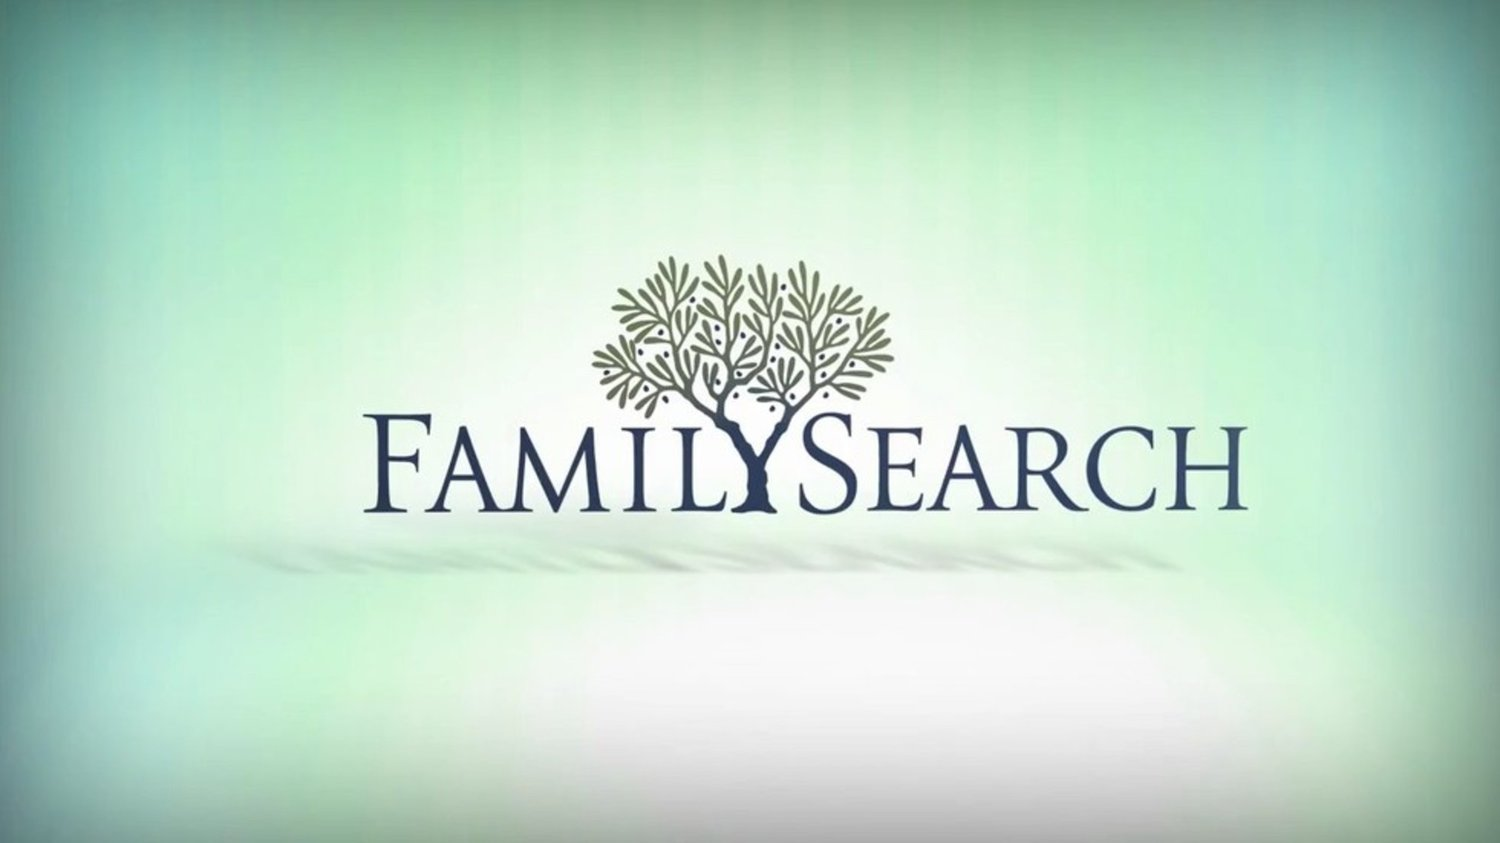 LDS Church's FamilySearch database to add same-sex families